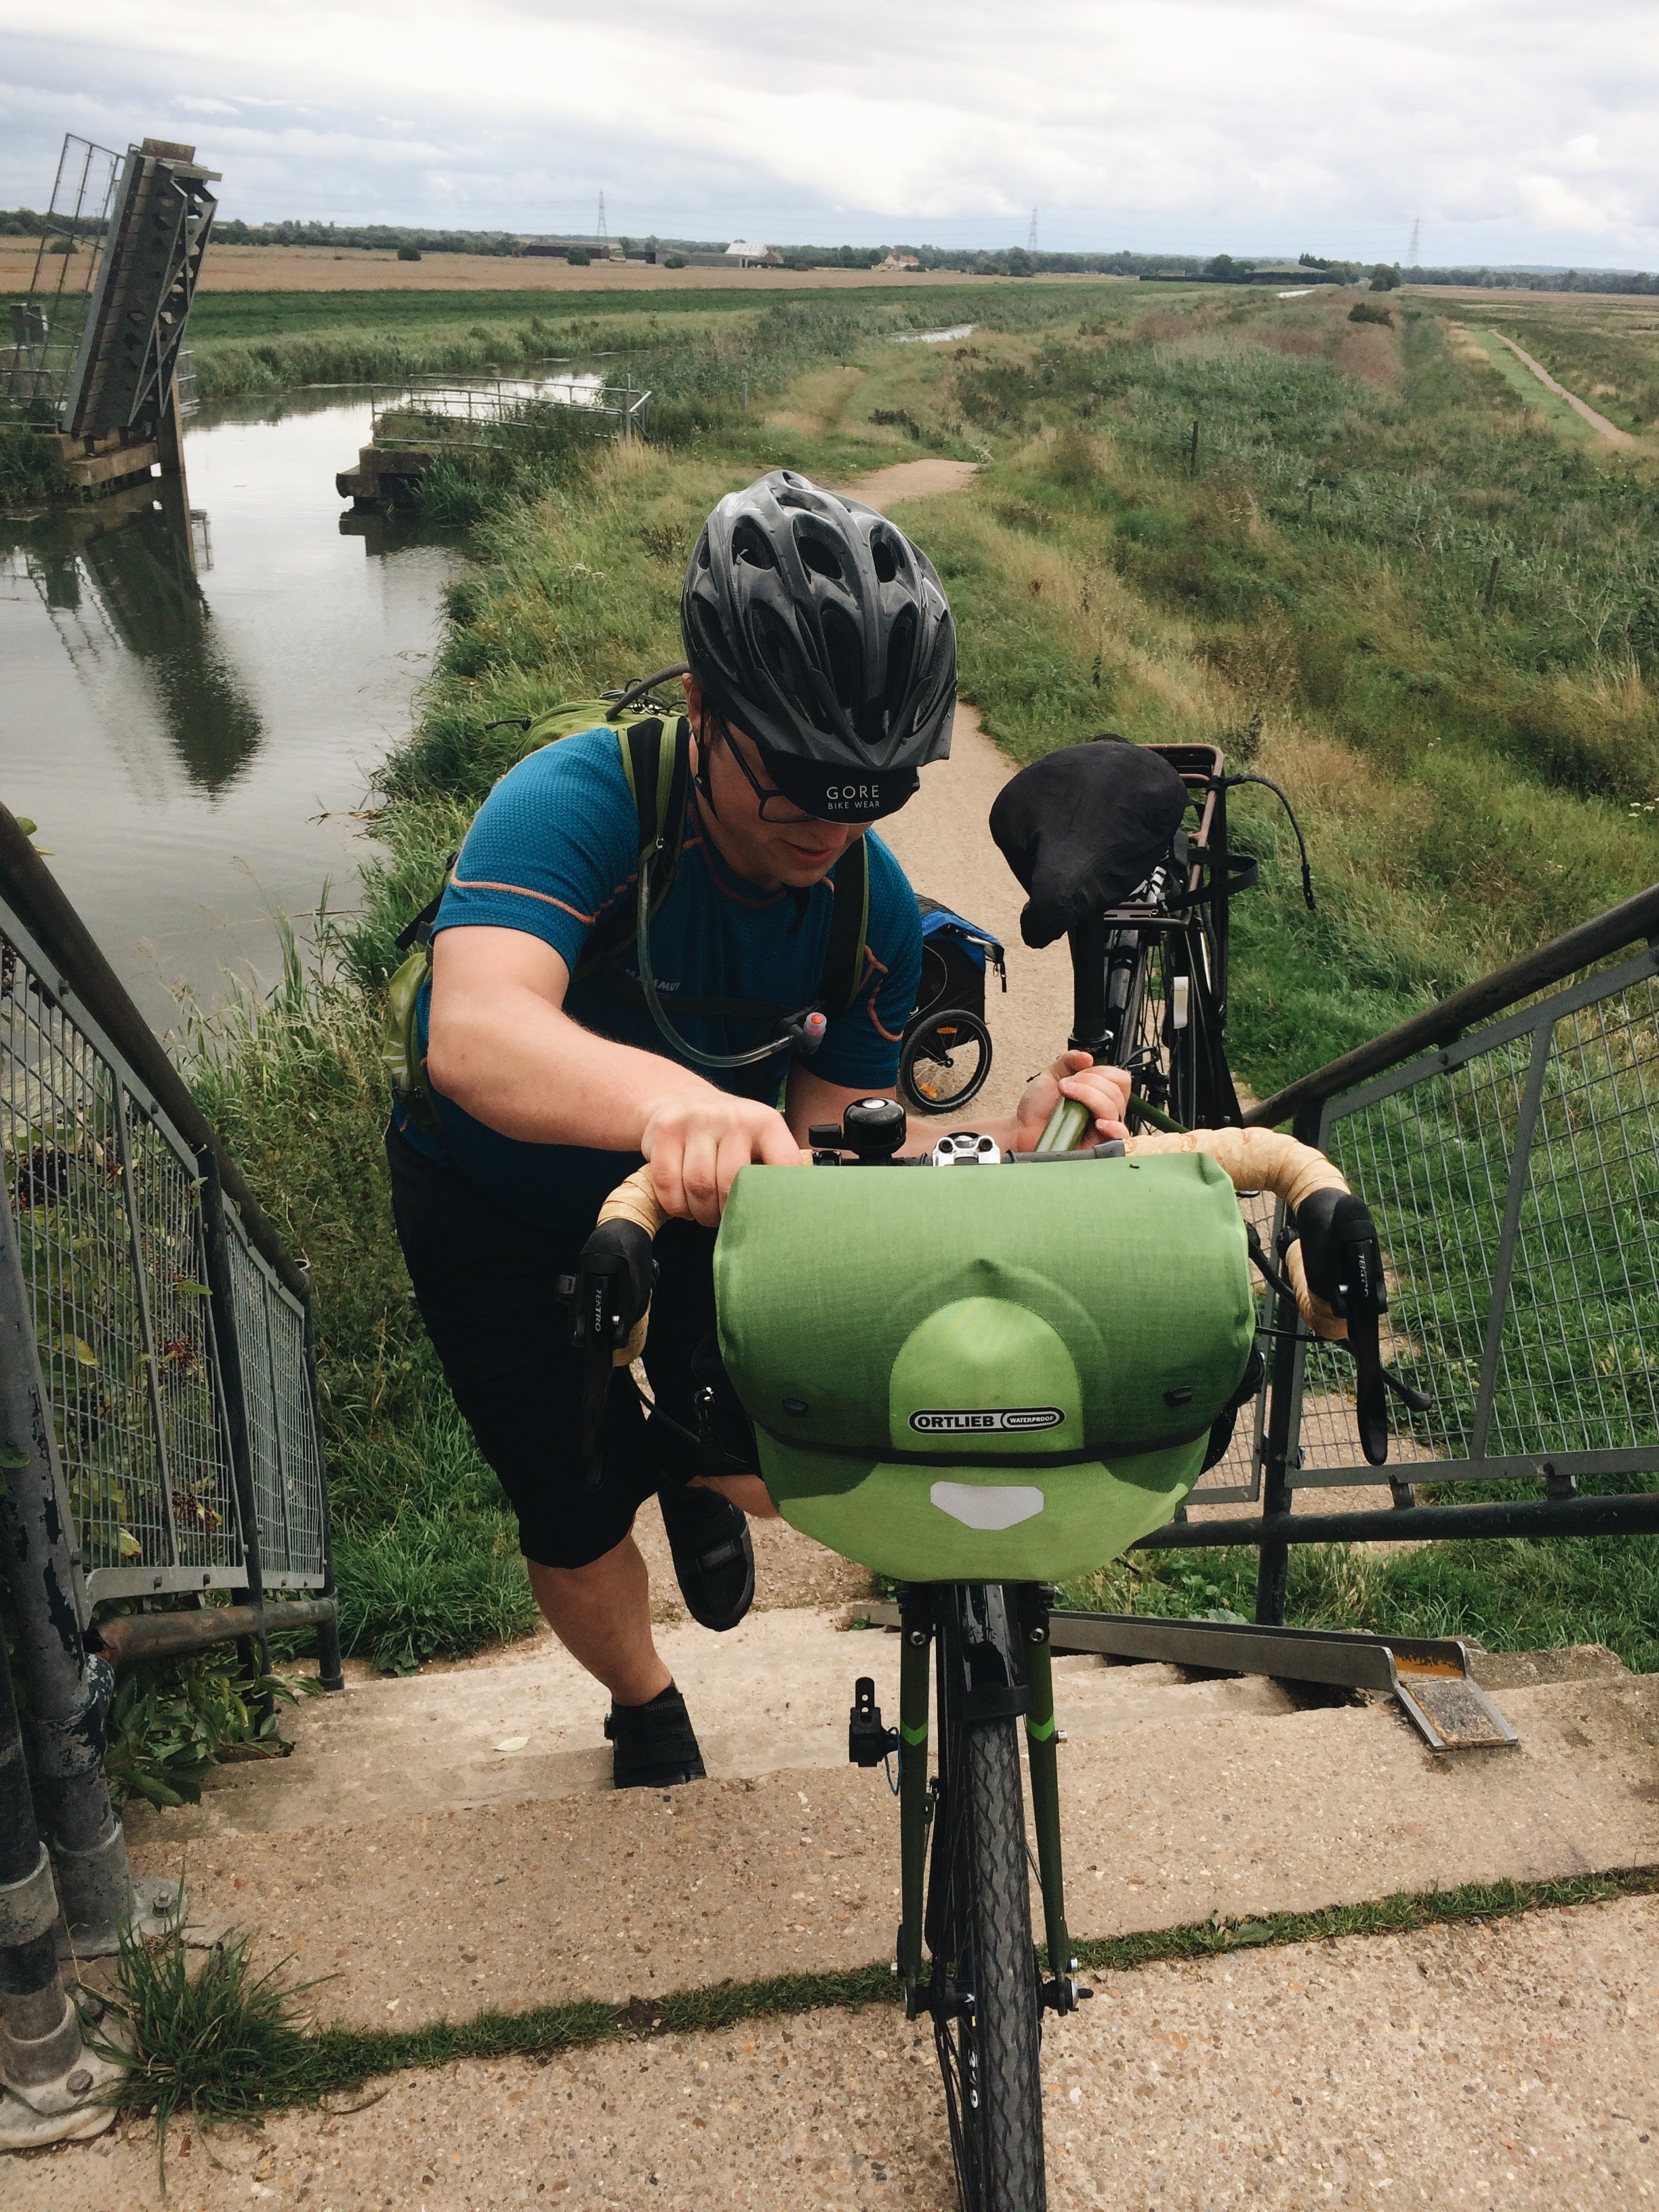 Crossing the footbridge at Wicken Fen. You can see a draw bridge in the background. It'd be awesome if sustrans could negotiate the use of that bridge for cycles... Because unloading the bikes to cross the bridge is a waste of 20 minutes...